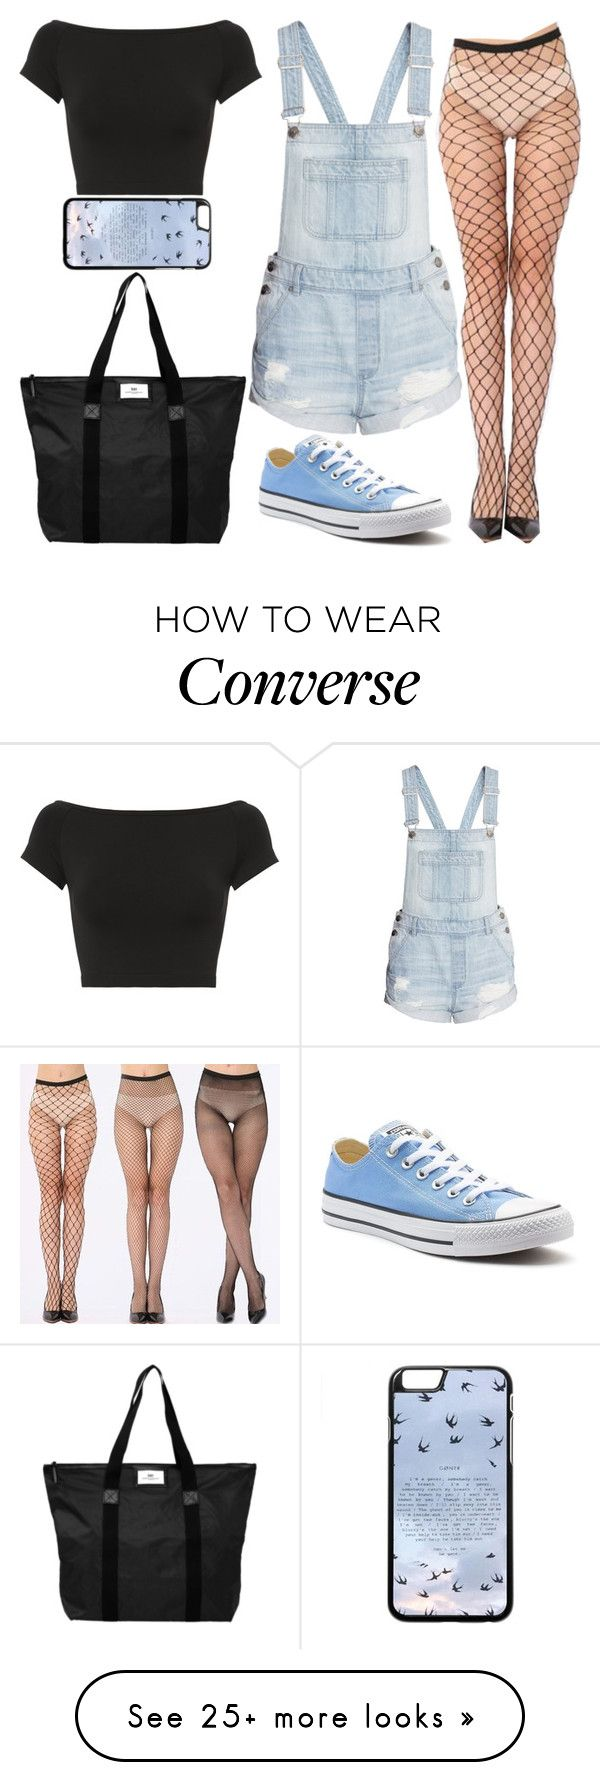 """""""Going Out"""" by lucy-wolf on Polyvore featuring DAY Birger et Mikkelsen, H&M, Converse and Helmut Lang"""